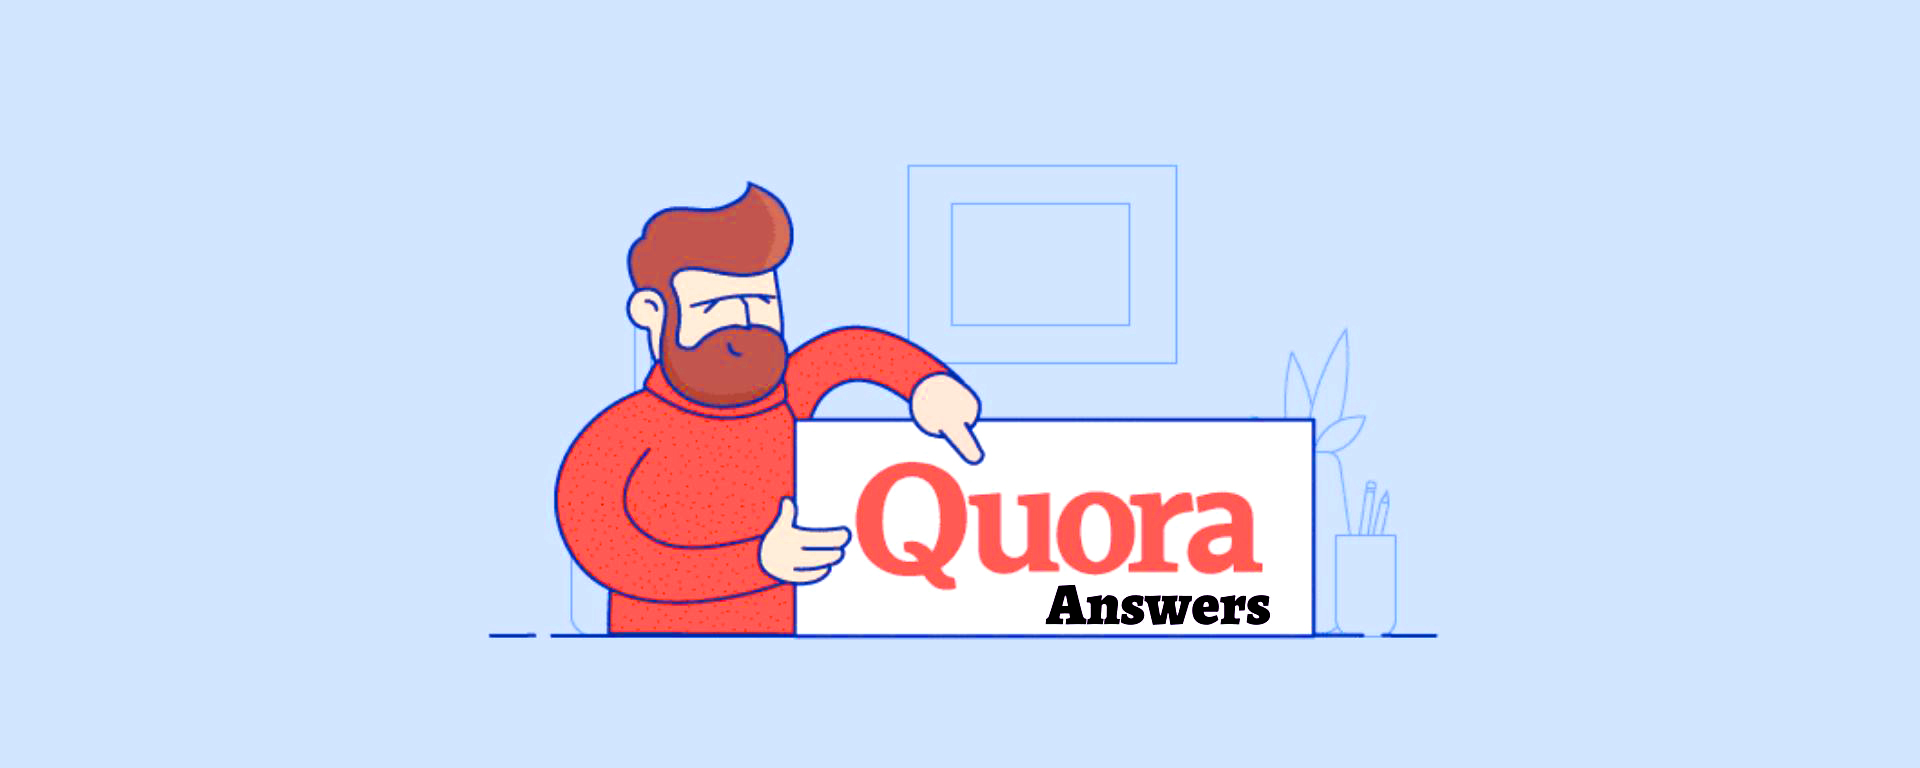 Promote your website 5 high quality quora answers with your keyword & URL